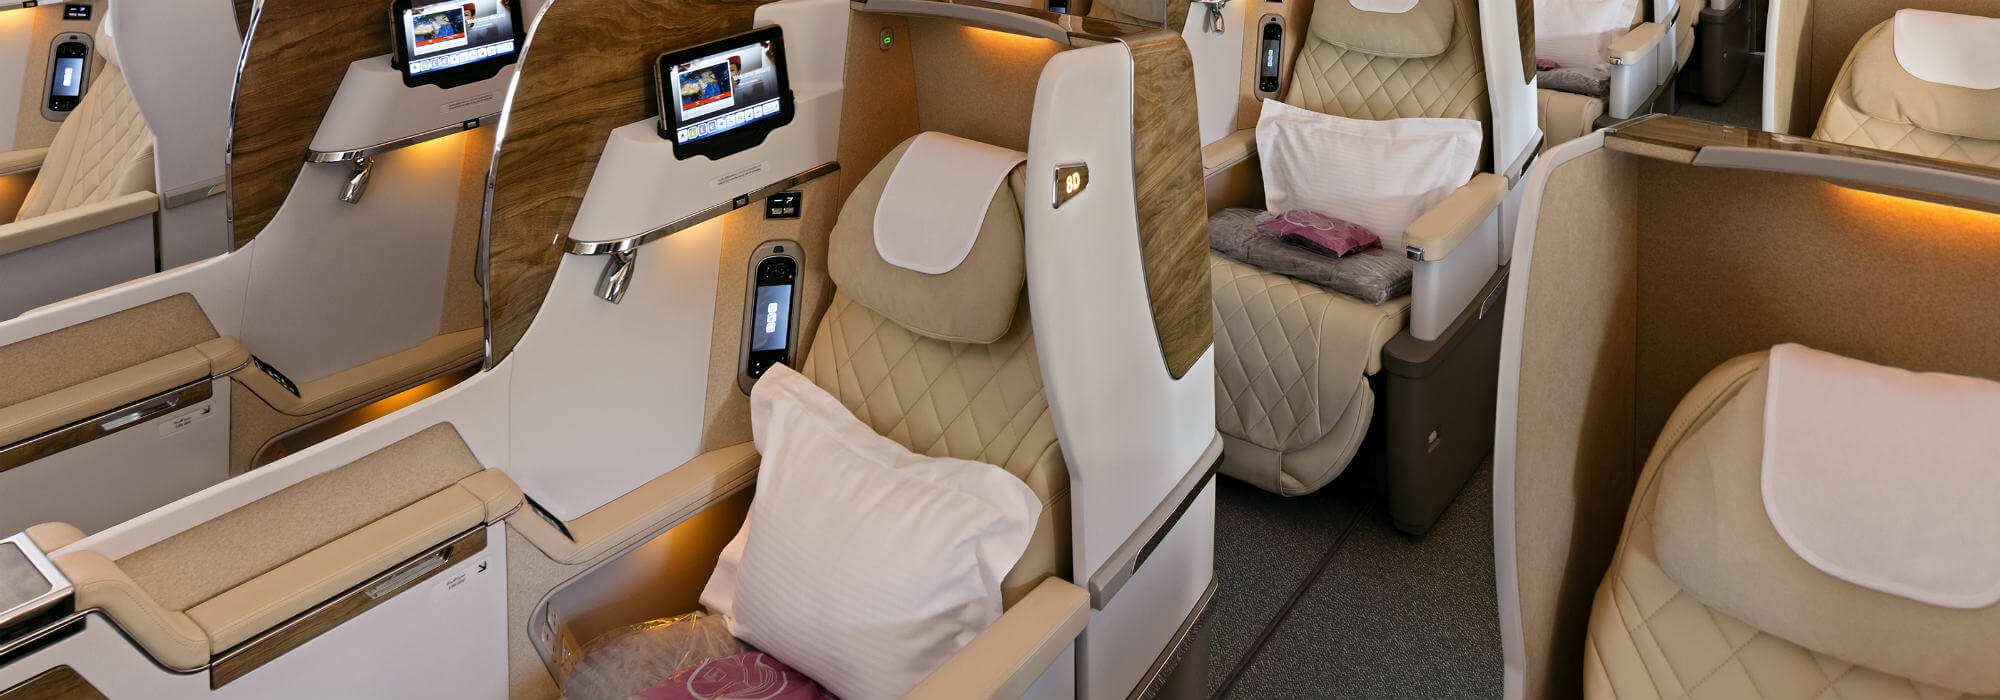 Business calss seats in Emirates 777-300ER